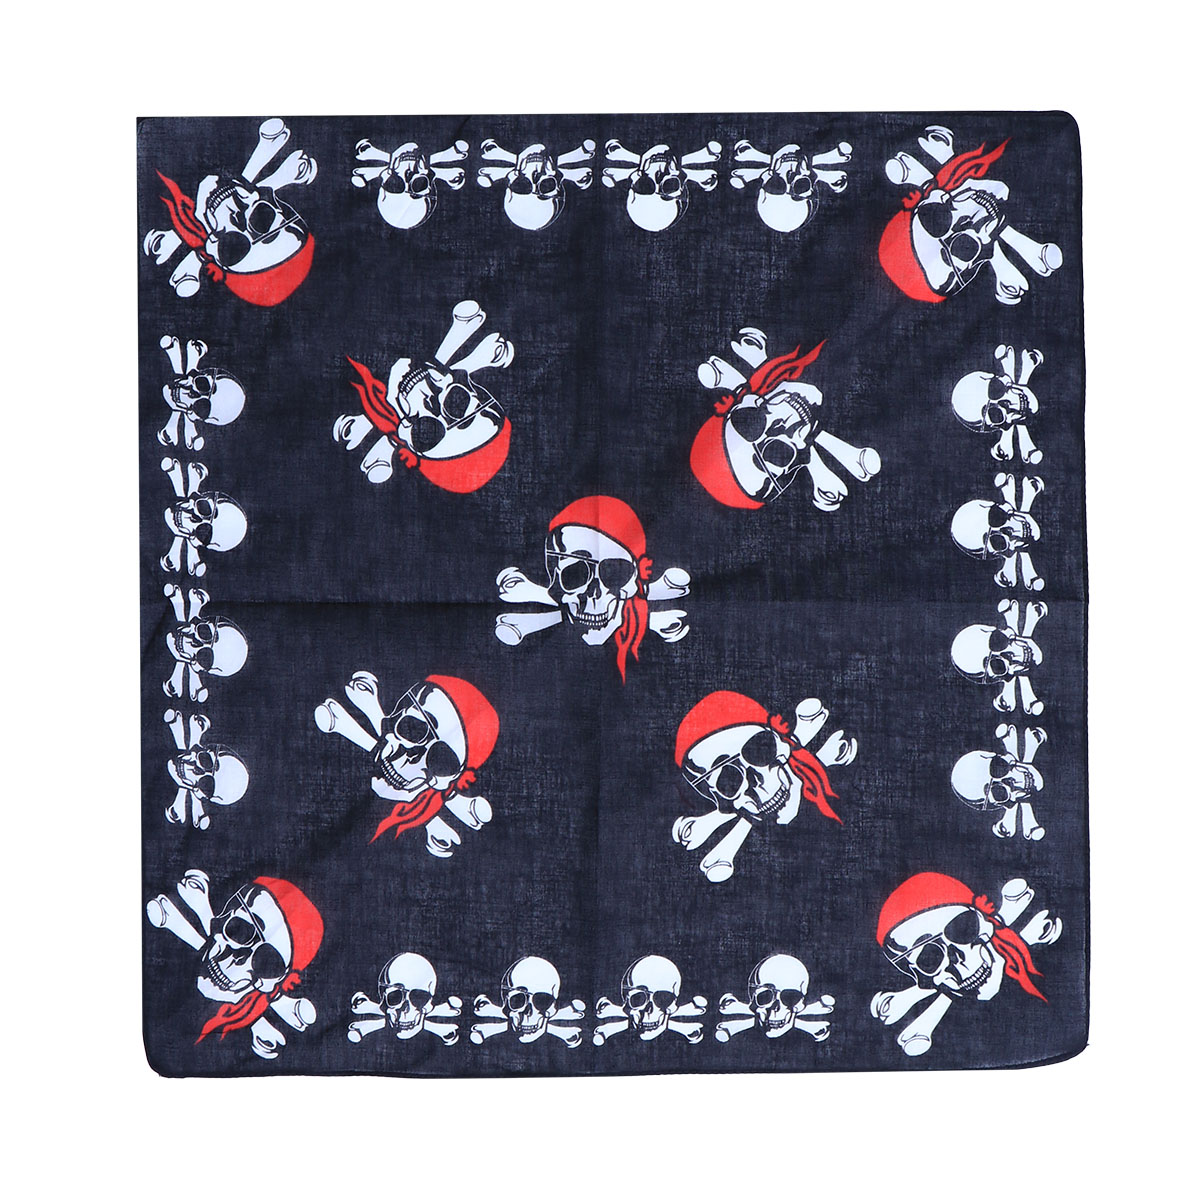 12pcs Pirate Handkerchief Pirate Accessories Scary Skull Hiphop Cotton Bandana Hair Accessory For Halloween Kids Cosplay Party